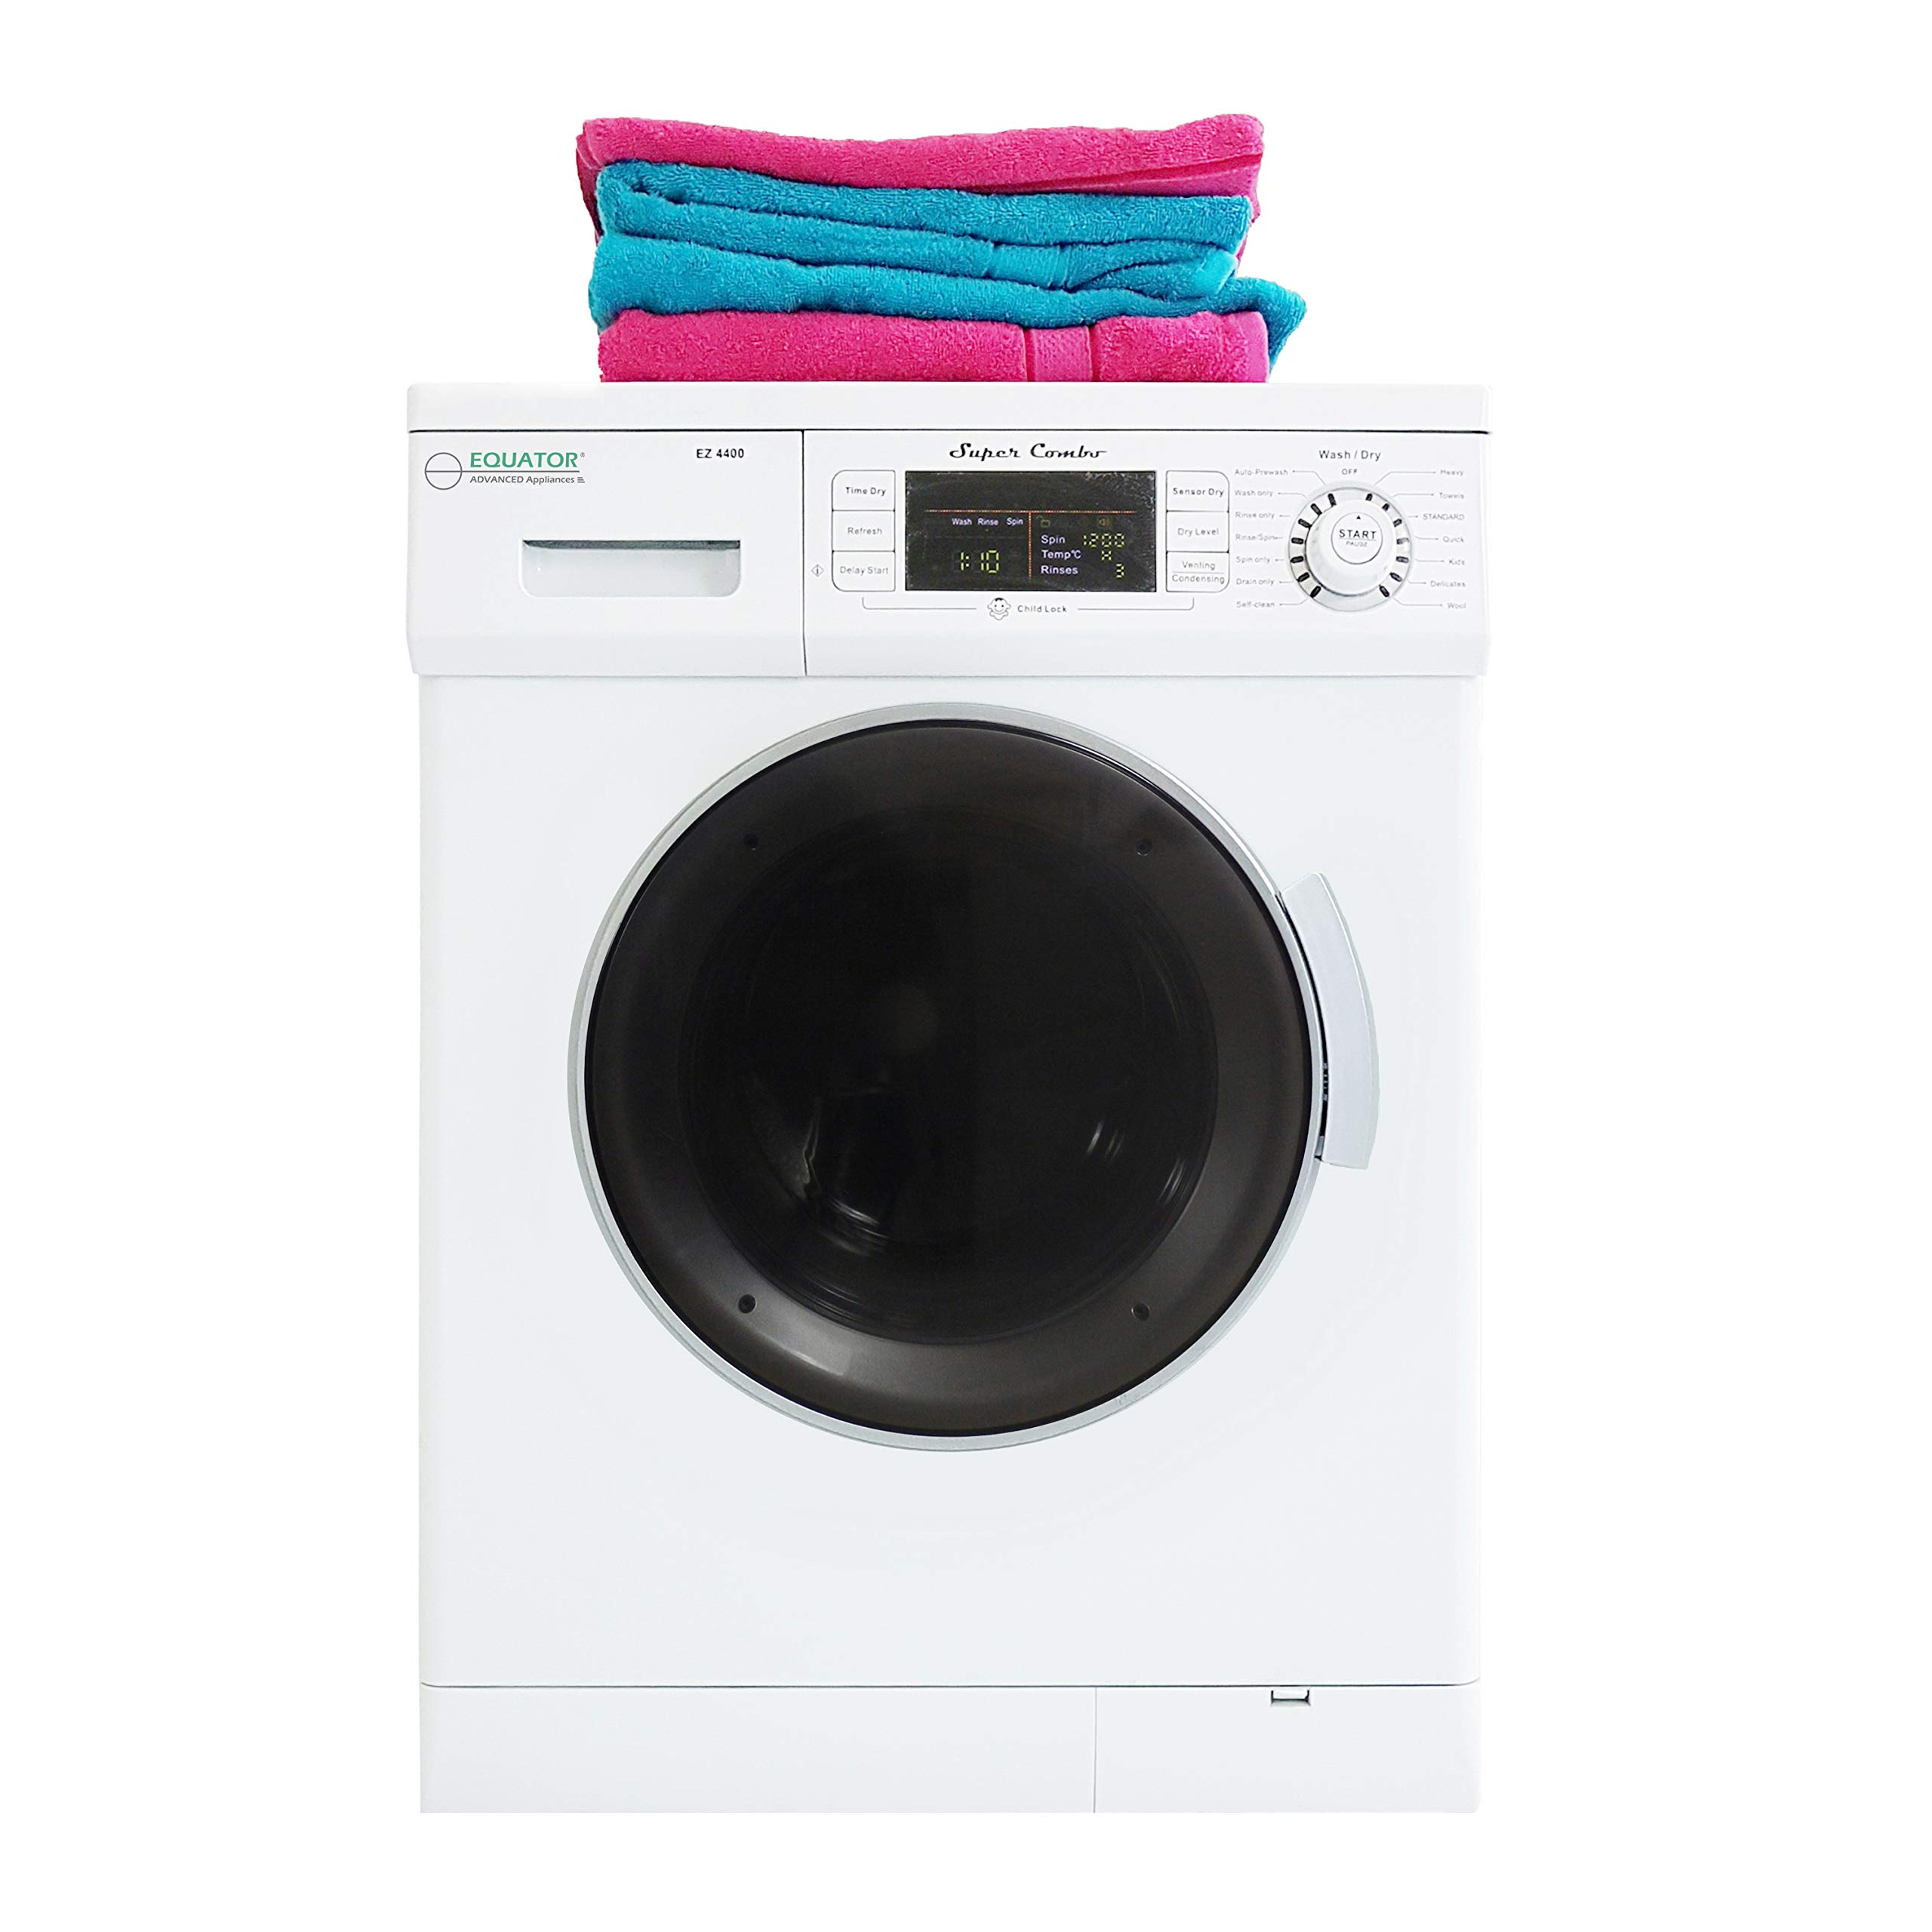 Equator All-in-one Compact Combo Washer Dryer 1200 RPM spin, Auto water level, Sensor Dry Optional Venting/Condensing in White